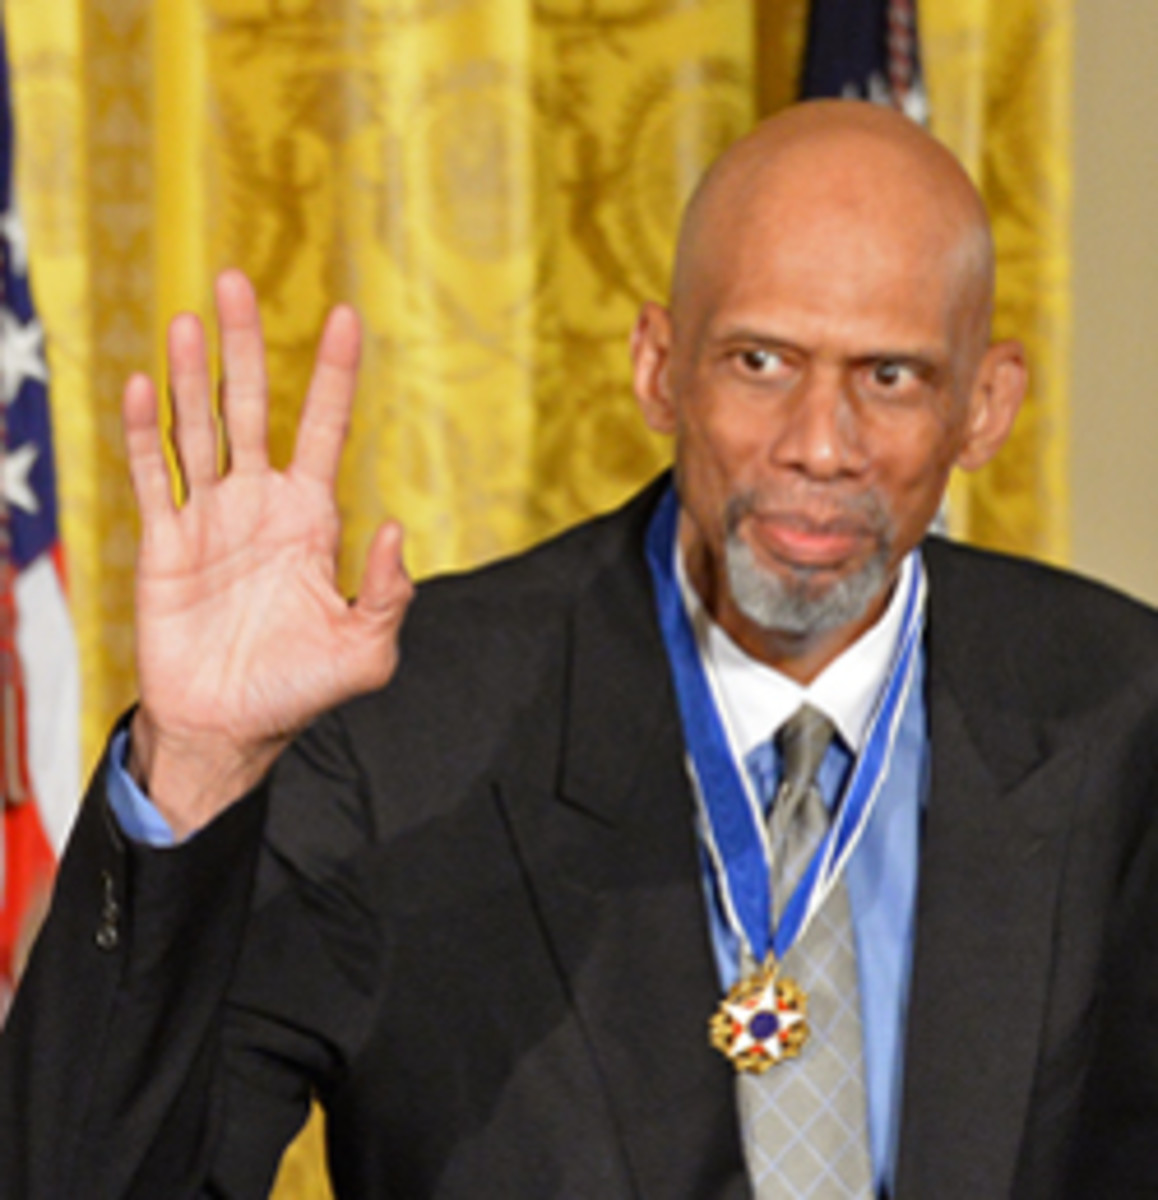 WASHINGTON, DC - NOVEMBER 22:  President of the United States, Barack Obama presents NBA Hall of Famer Kareem Abdul-Jabbar with a medal during a ceremony for the Presidential Medal of Freedom at the White House on November 22, 2016 in Washington D.C. NOTE TO USER: User expressly acknowledges and agrees that, by downloading and or using this photograph, User is consenting to the terms and conditions of the Getty Images License Agreement. Mandatory Copyright Notice: Copyright 2016 NBAE (Photo by Jon SooHoo/NBAE via Getty Images)